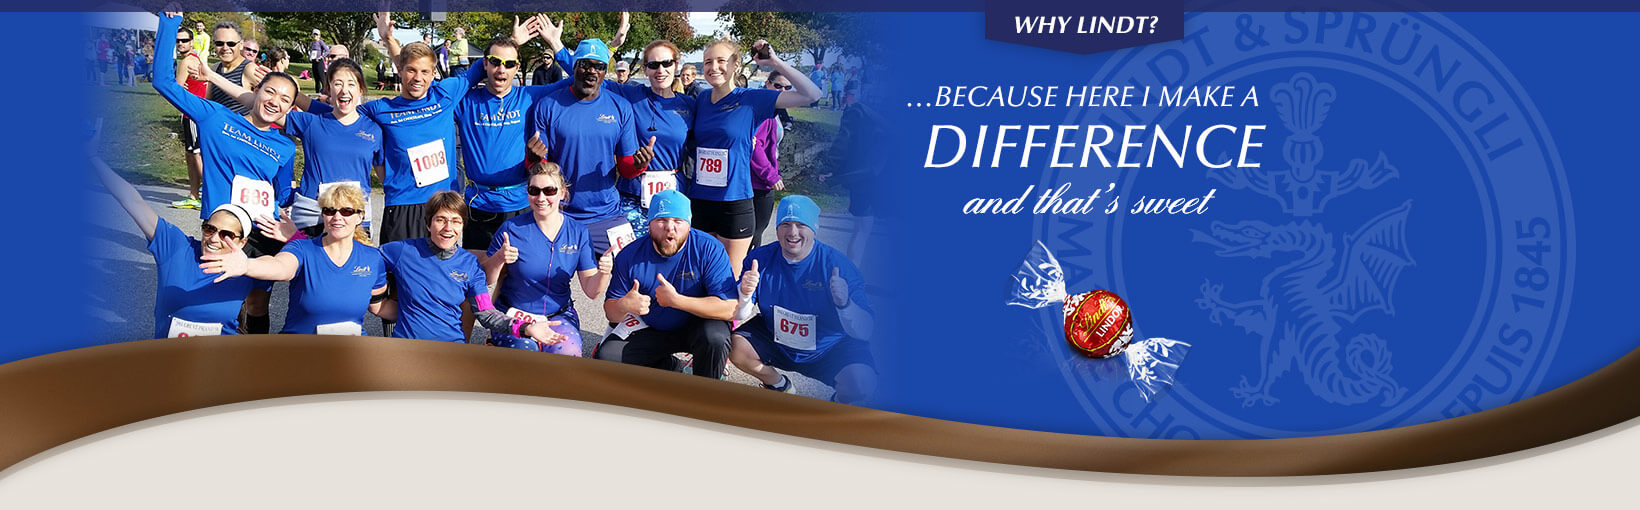 Why Lindt? …Because here I make a difference and that's sweet.